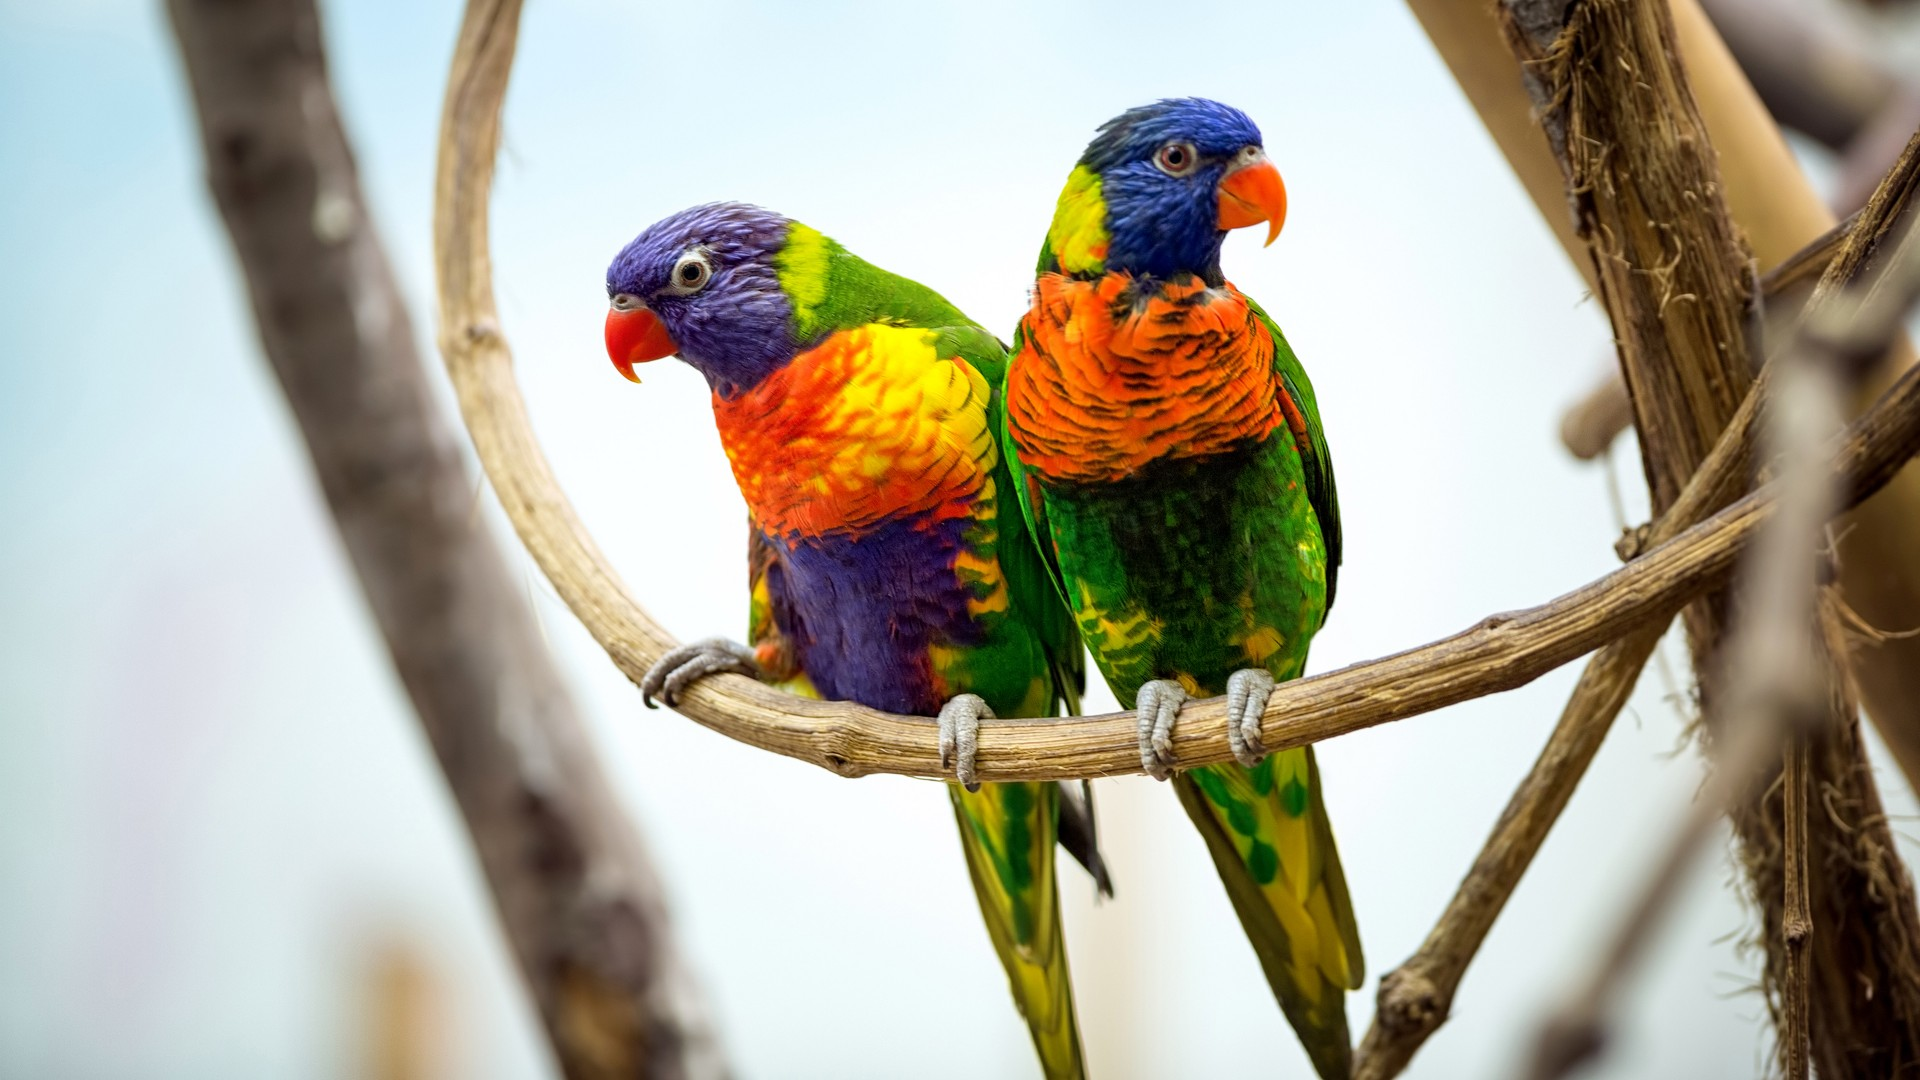 3d Wallpaper For Pc 1366x768 Parrot Pair 4k Wallpapers Hd Wallpapers Id 20010